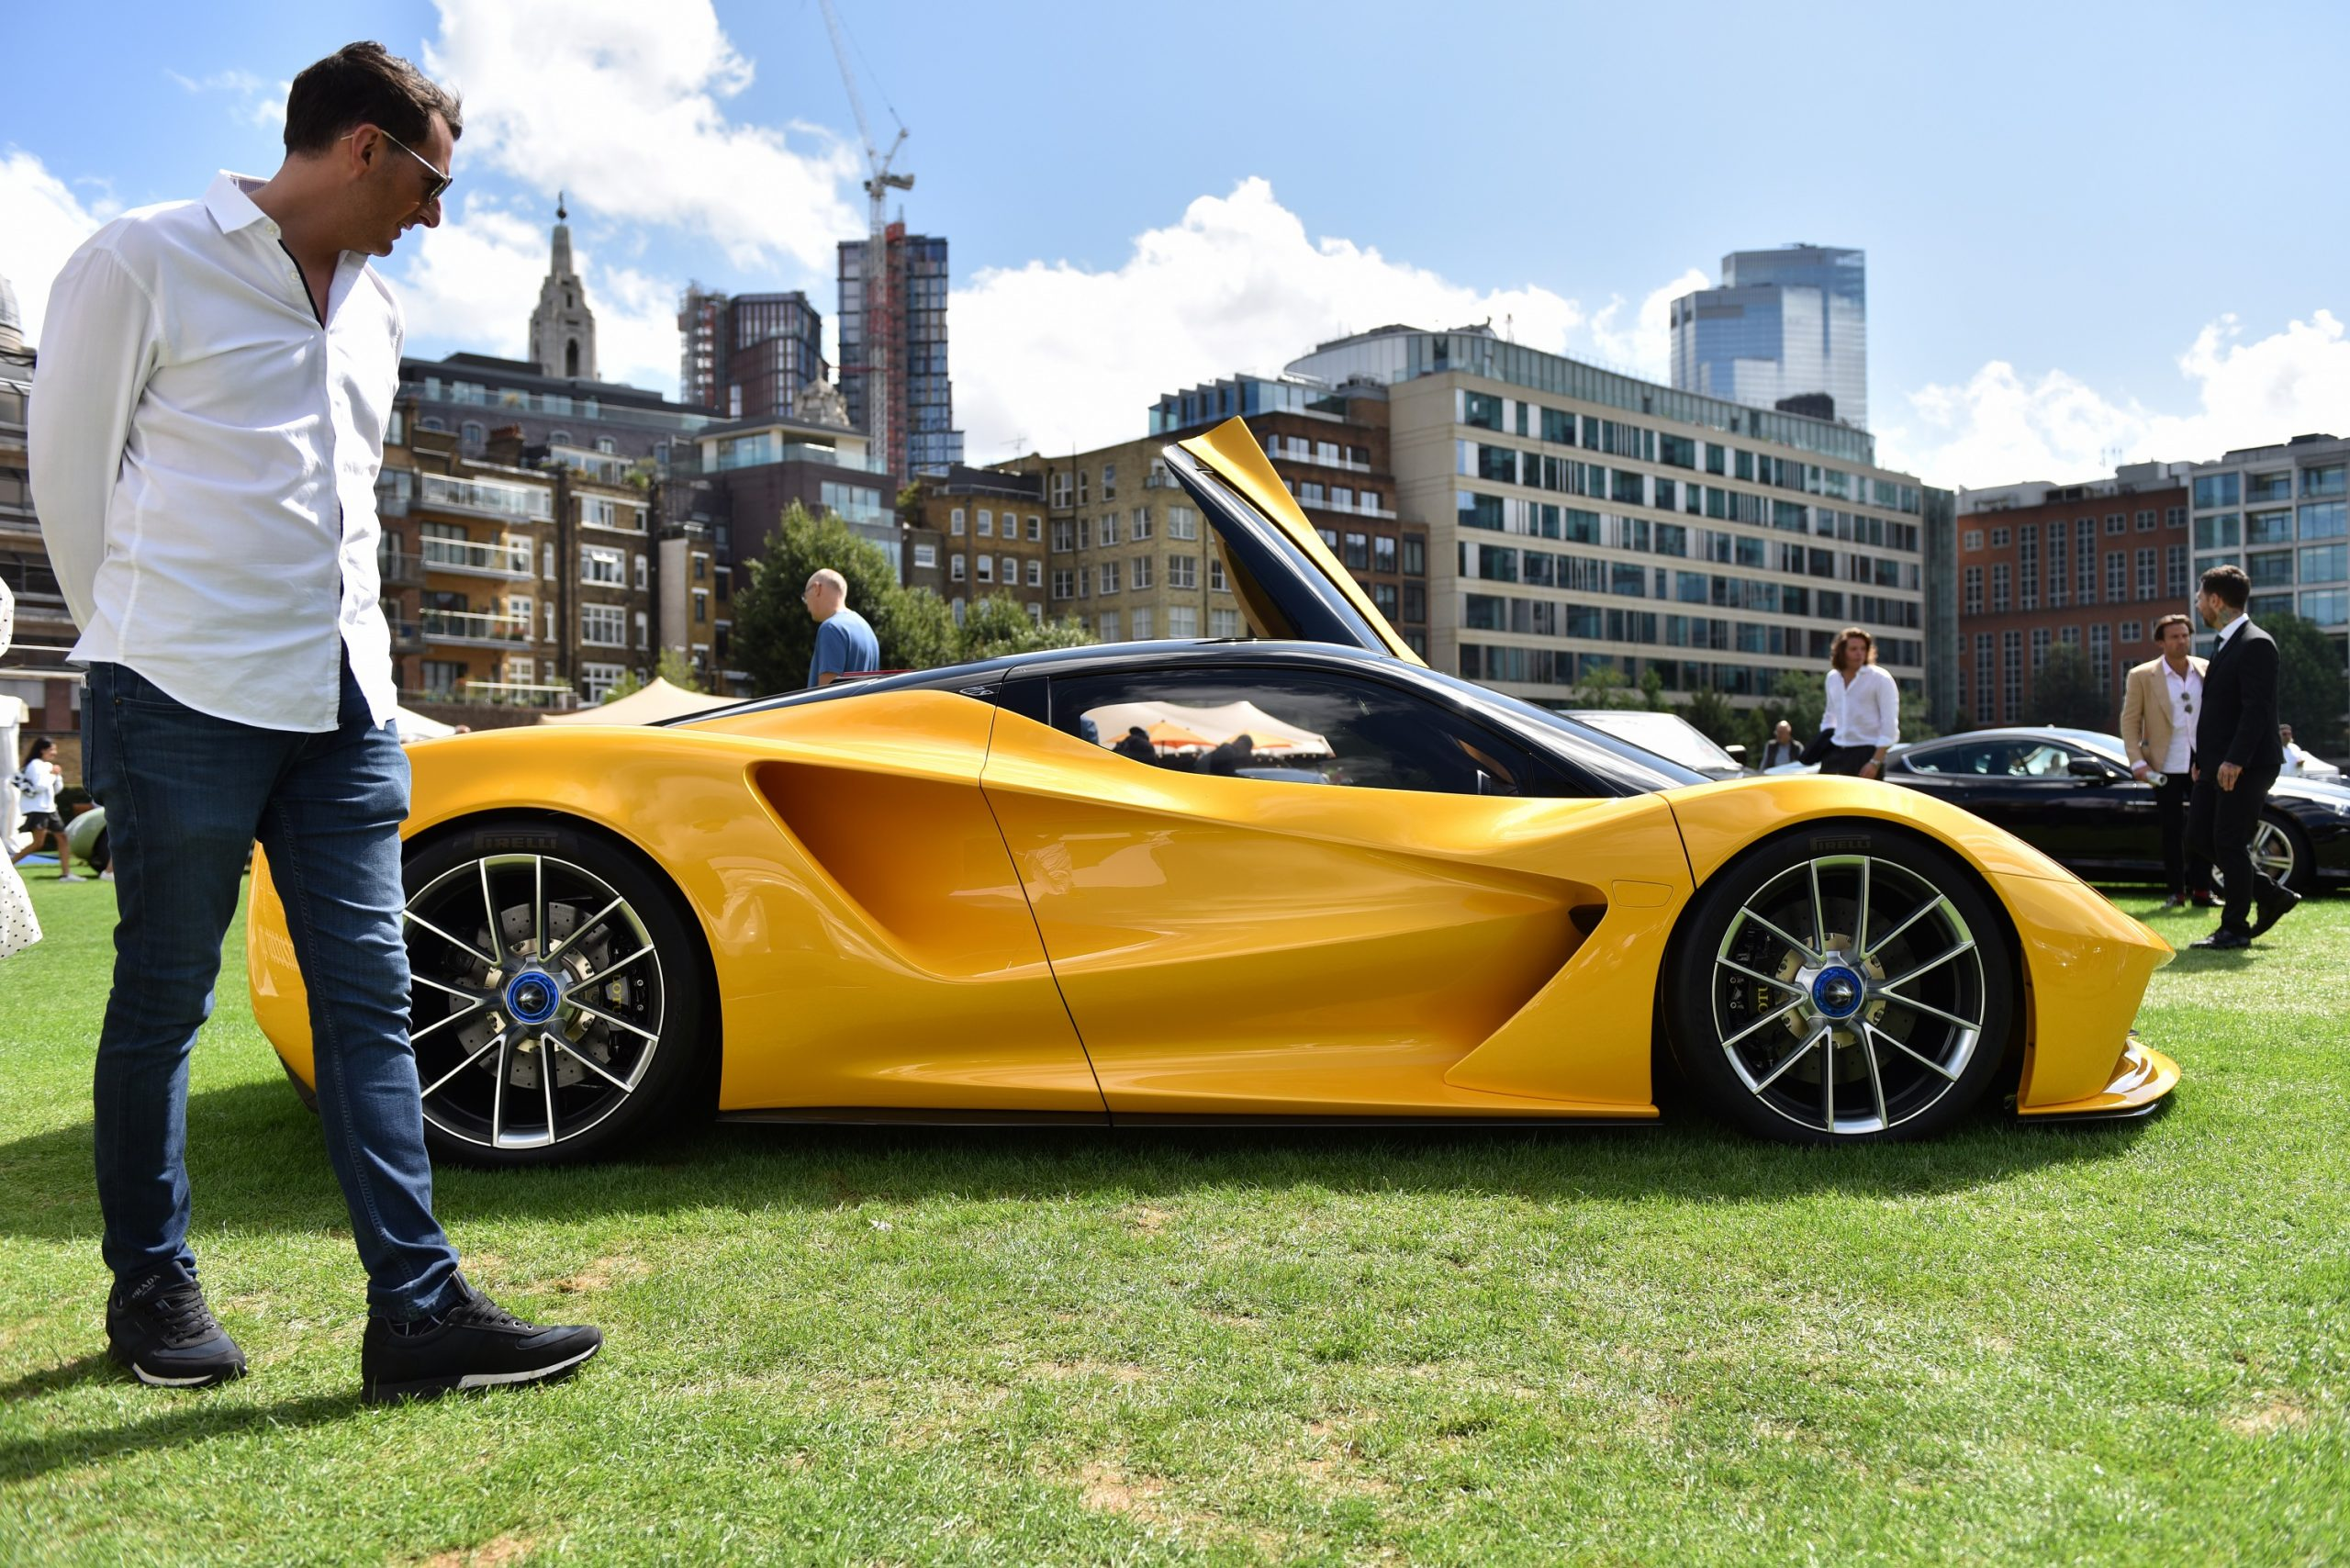 A yellow Lotus Evija is admired by a passerby at a concourse event, shot in profile